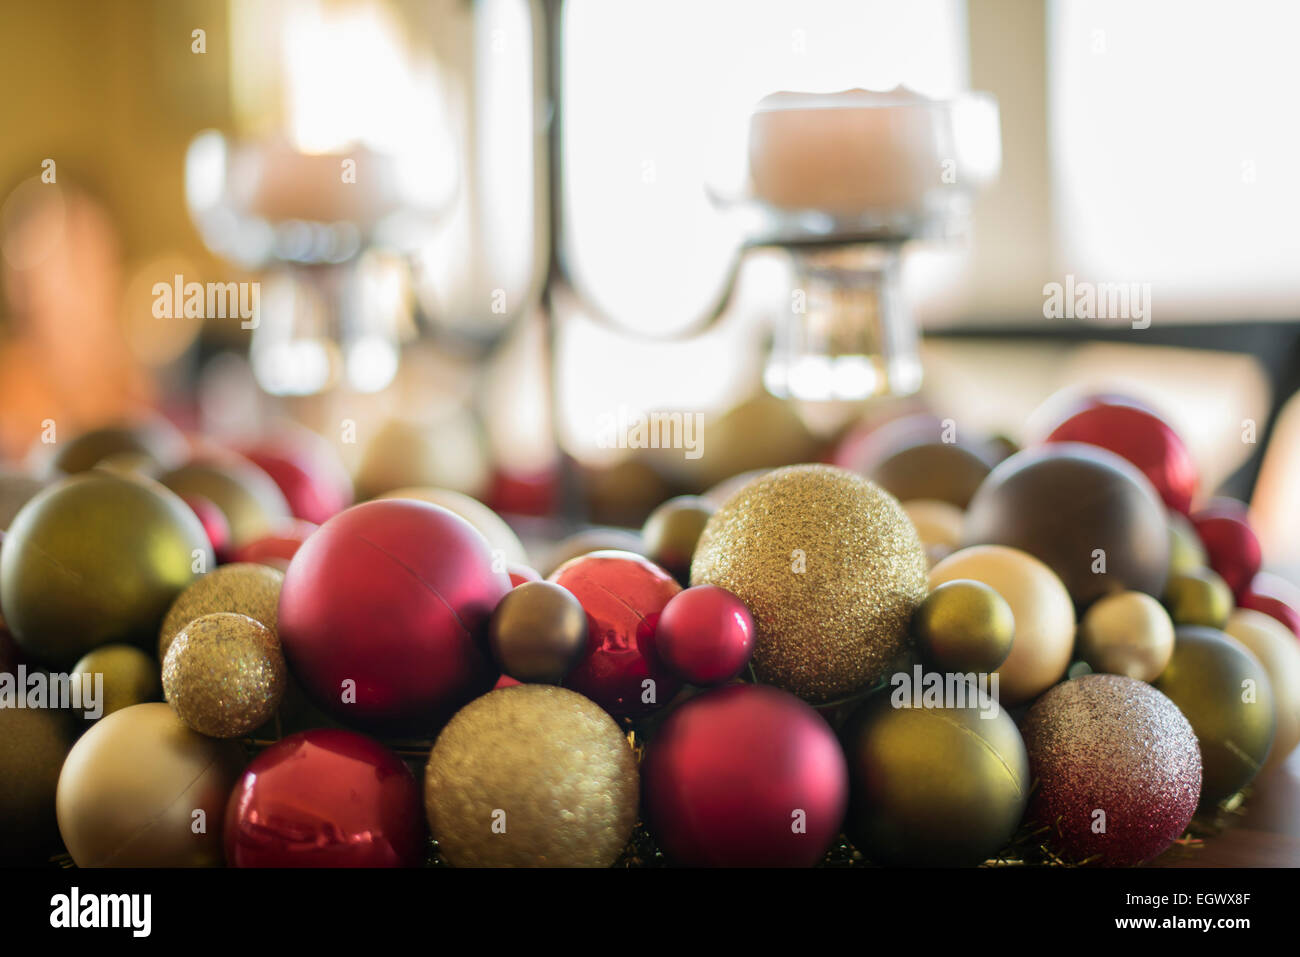 A table laid for a celebration meal. Christmas ornaments, decorations and a candle in a candle holder. - Stock Image